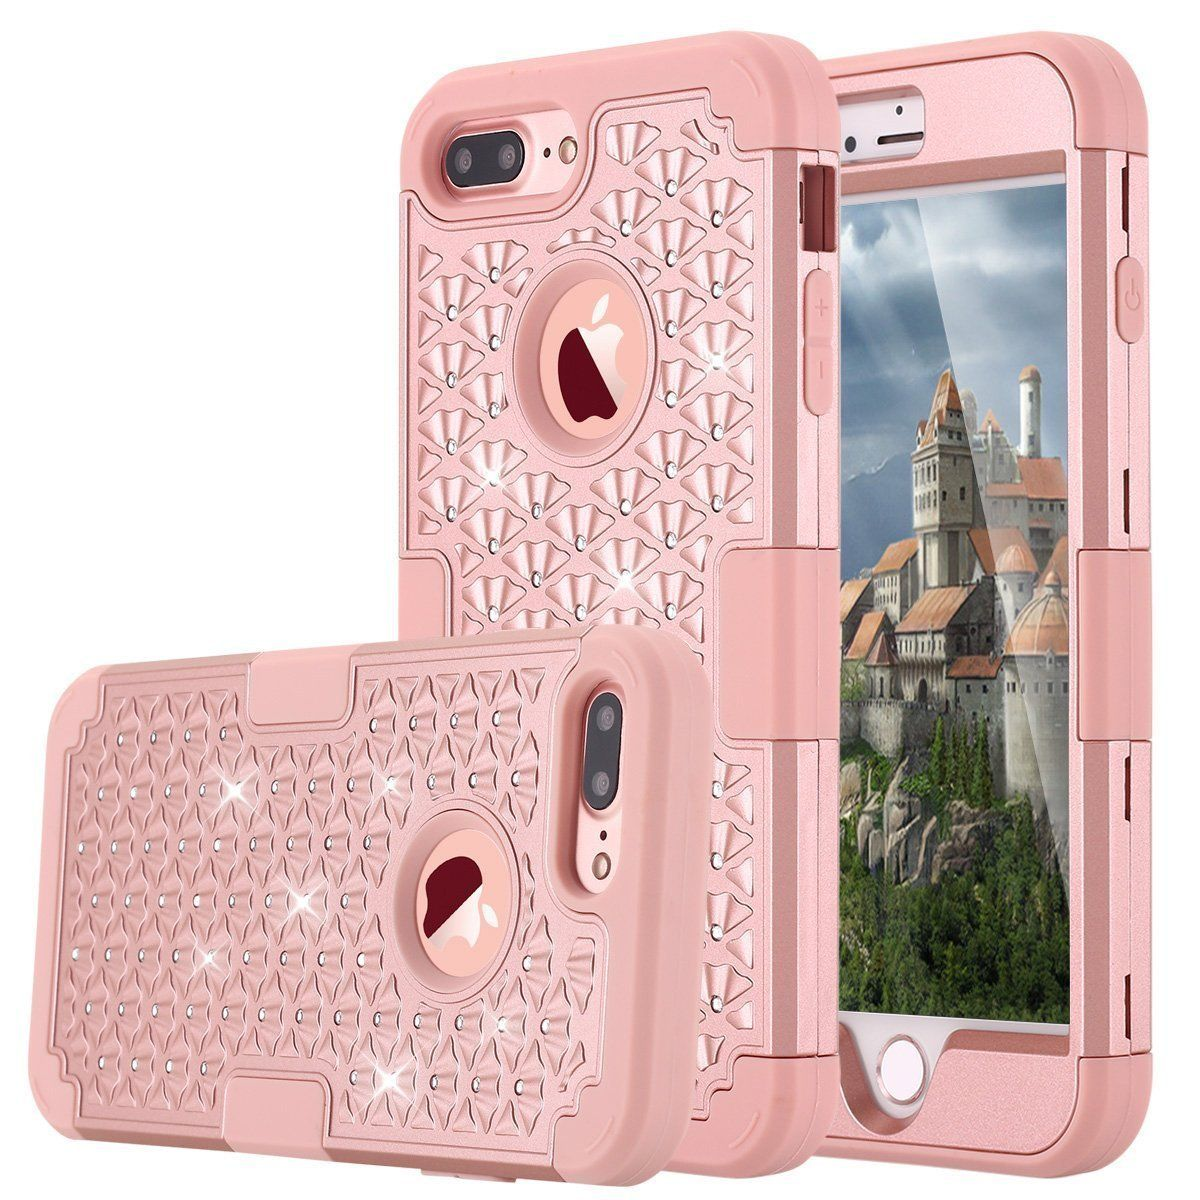 iphone 6 heavy duty rose gold case